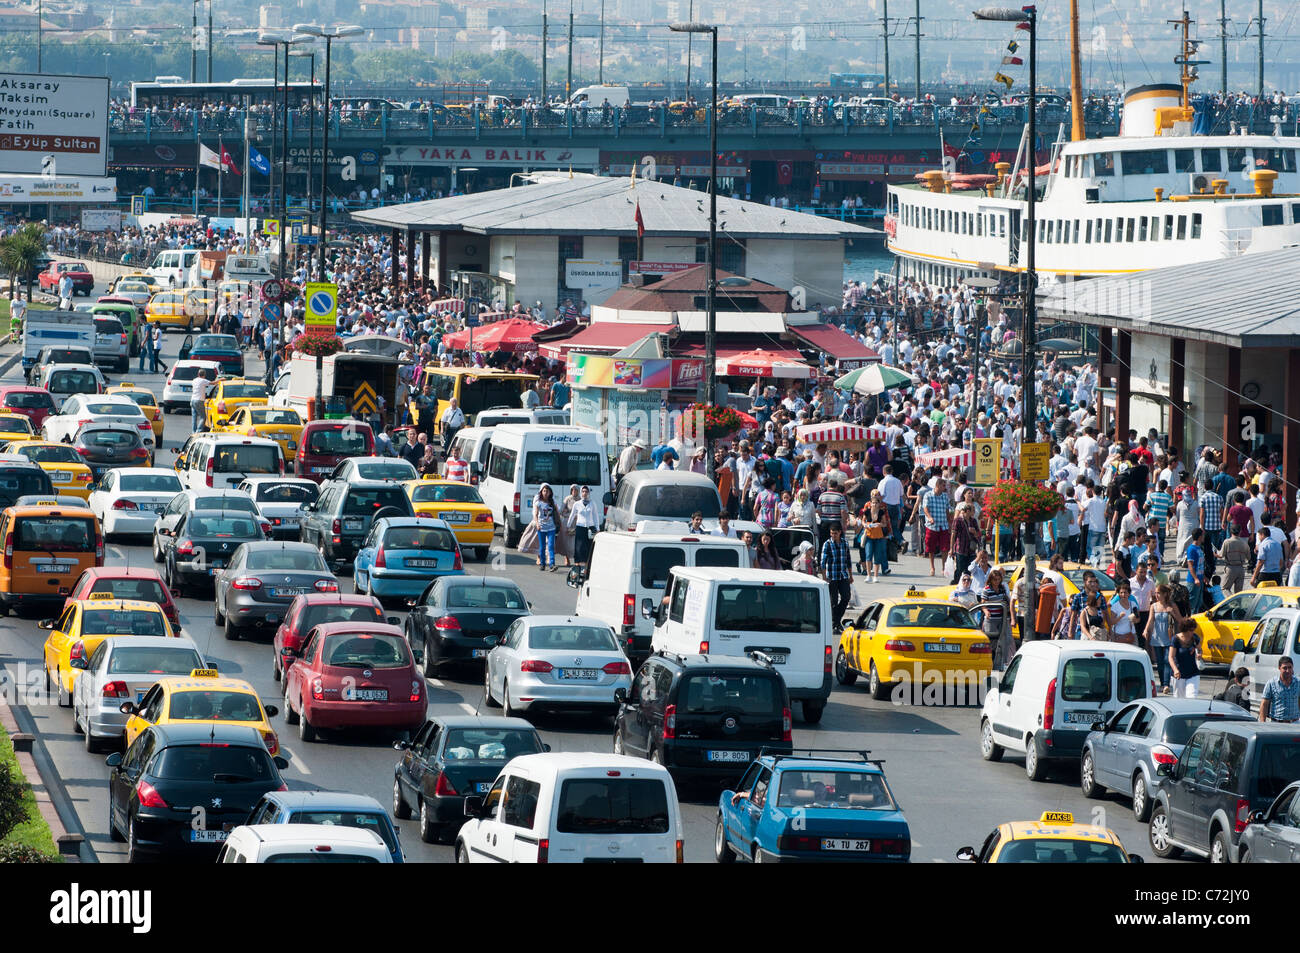 Heavy traffic and crowds near the harbour on Ramadan in Istanbul. Turkey. - Stock Image